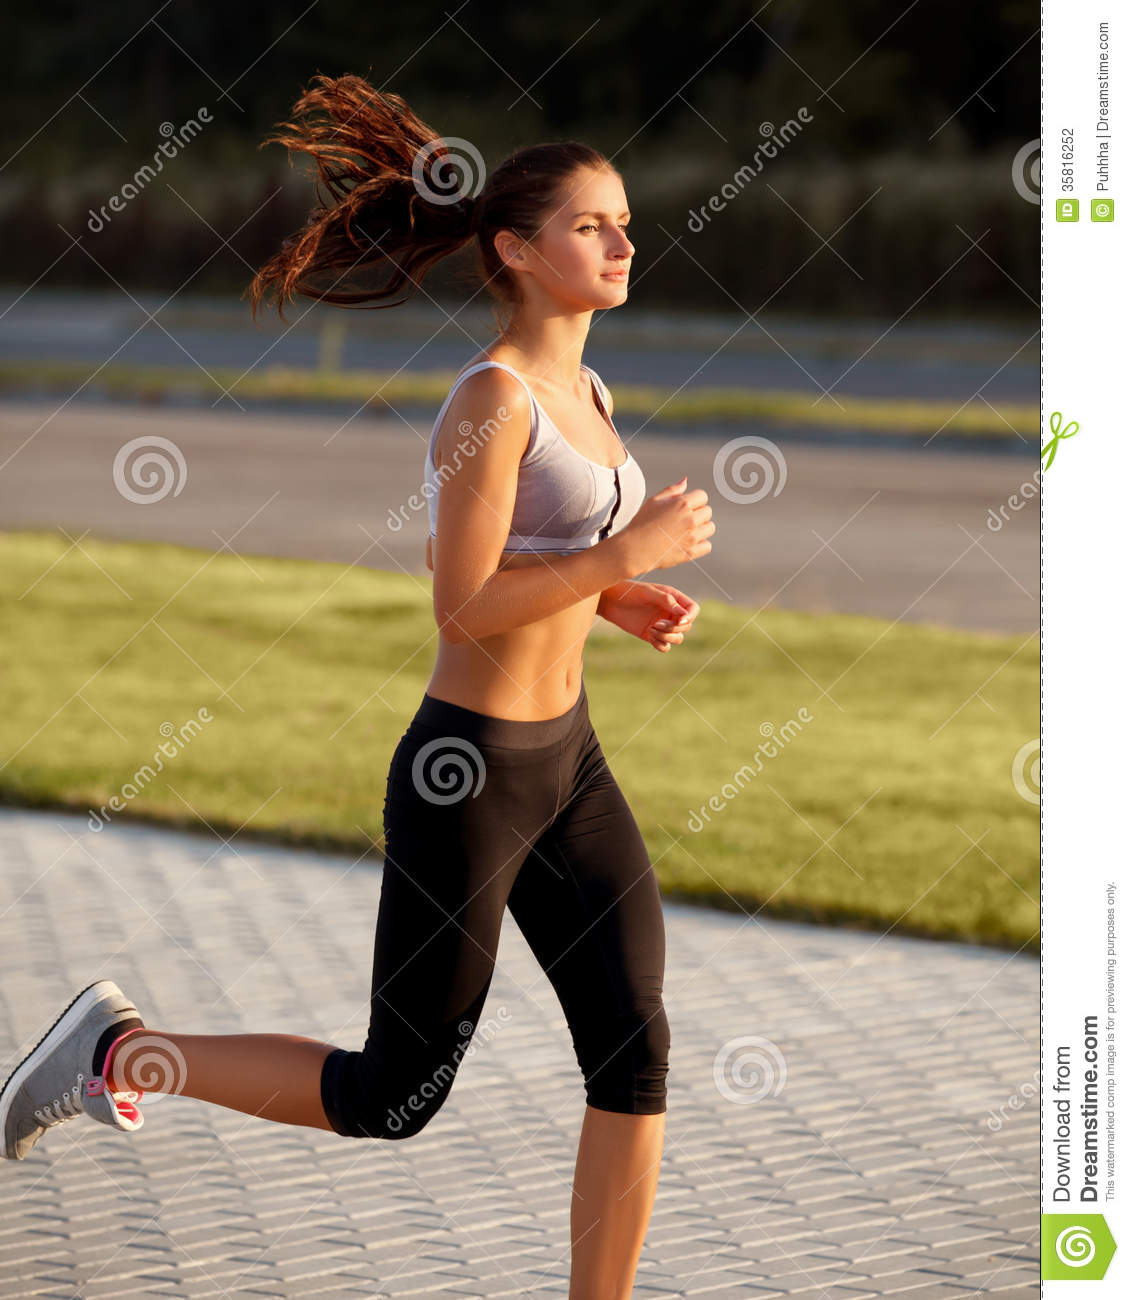 Athletic Runner Training in a park for marathon  Fitness Girl Running    Hot Girl Marathon Runner